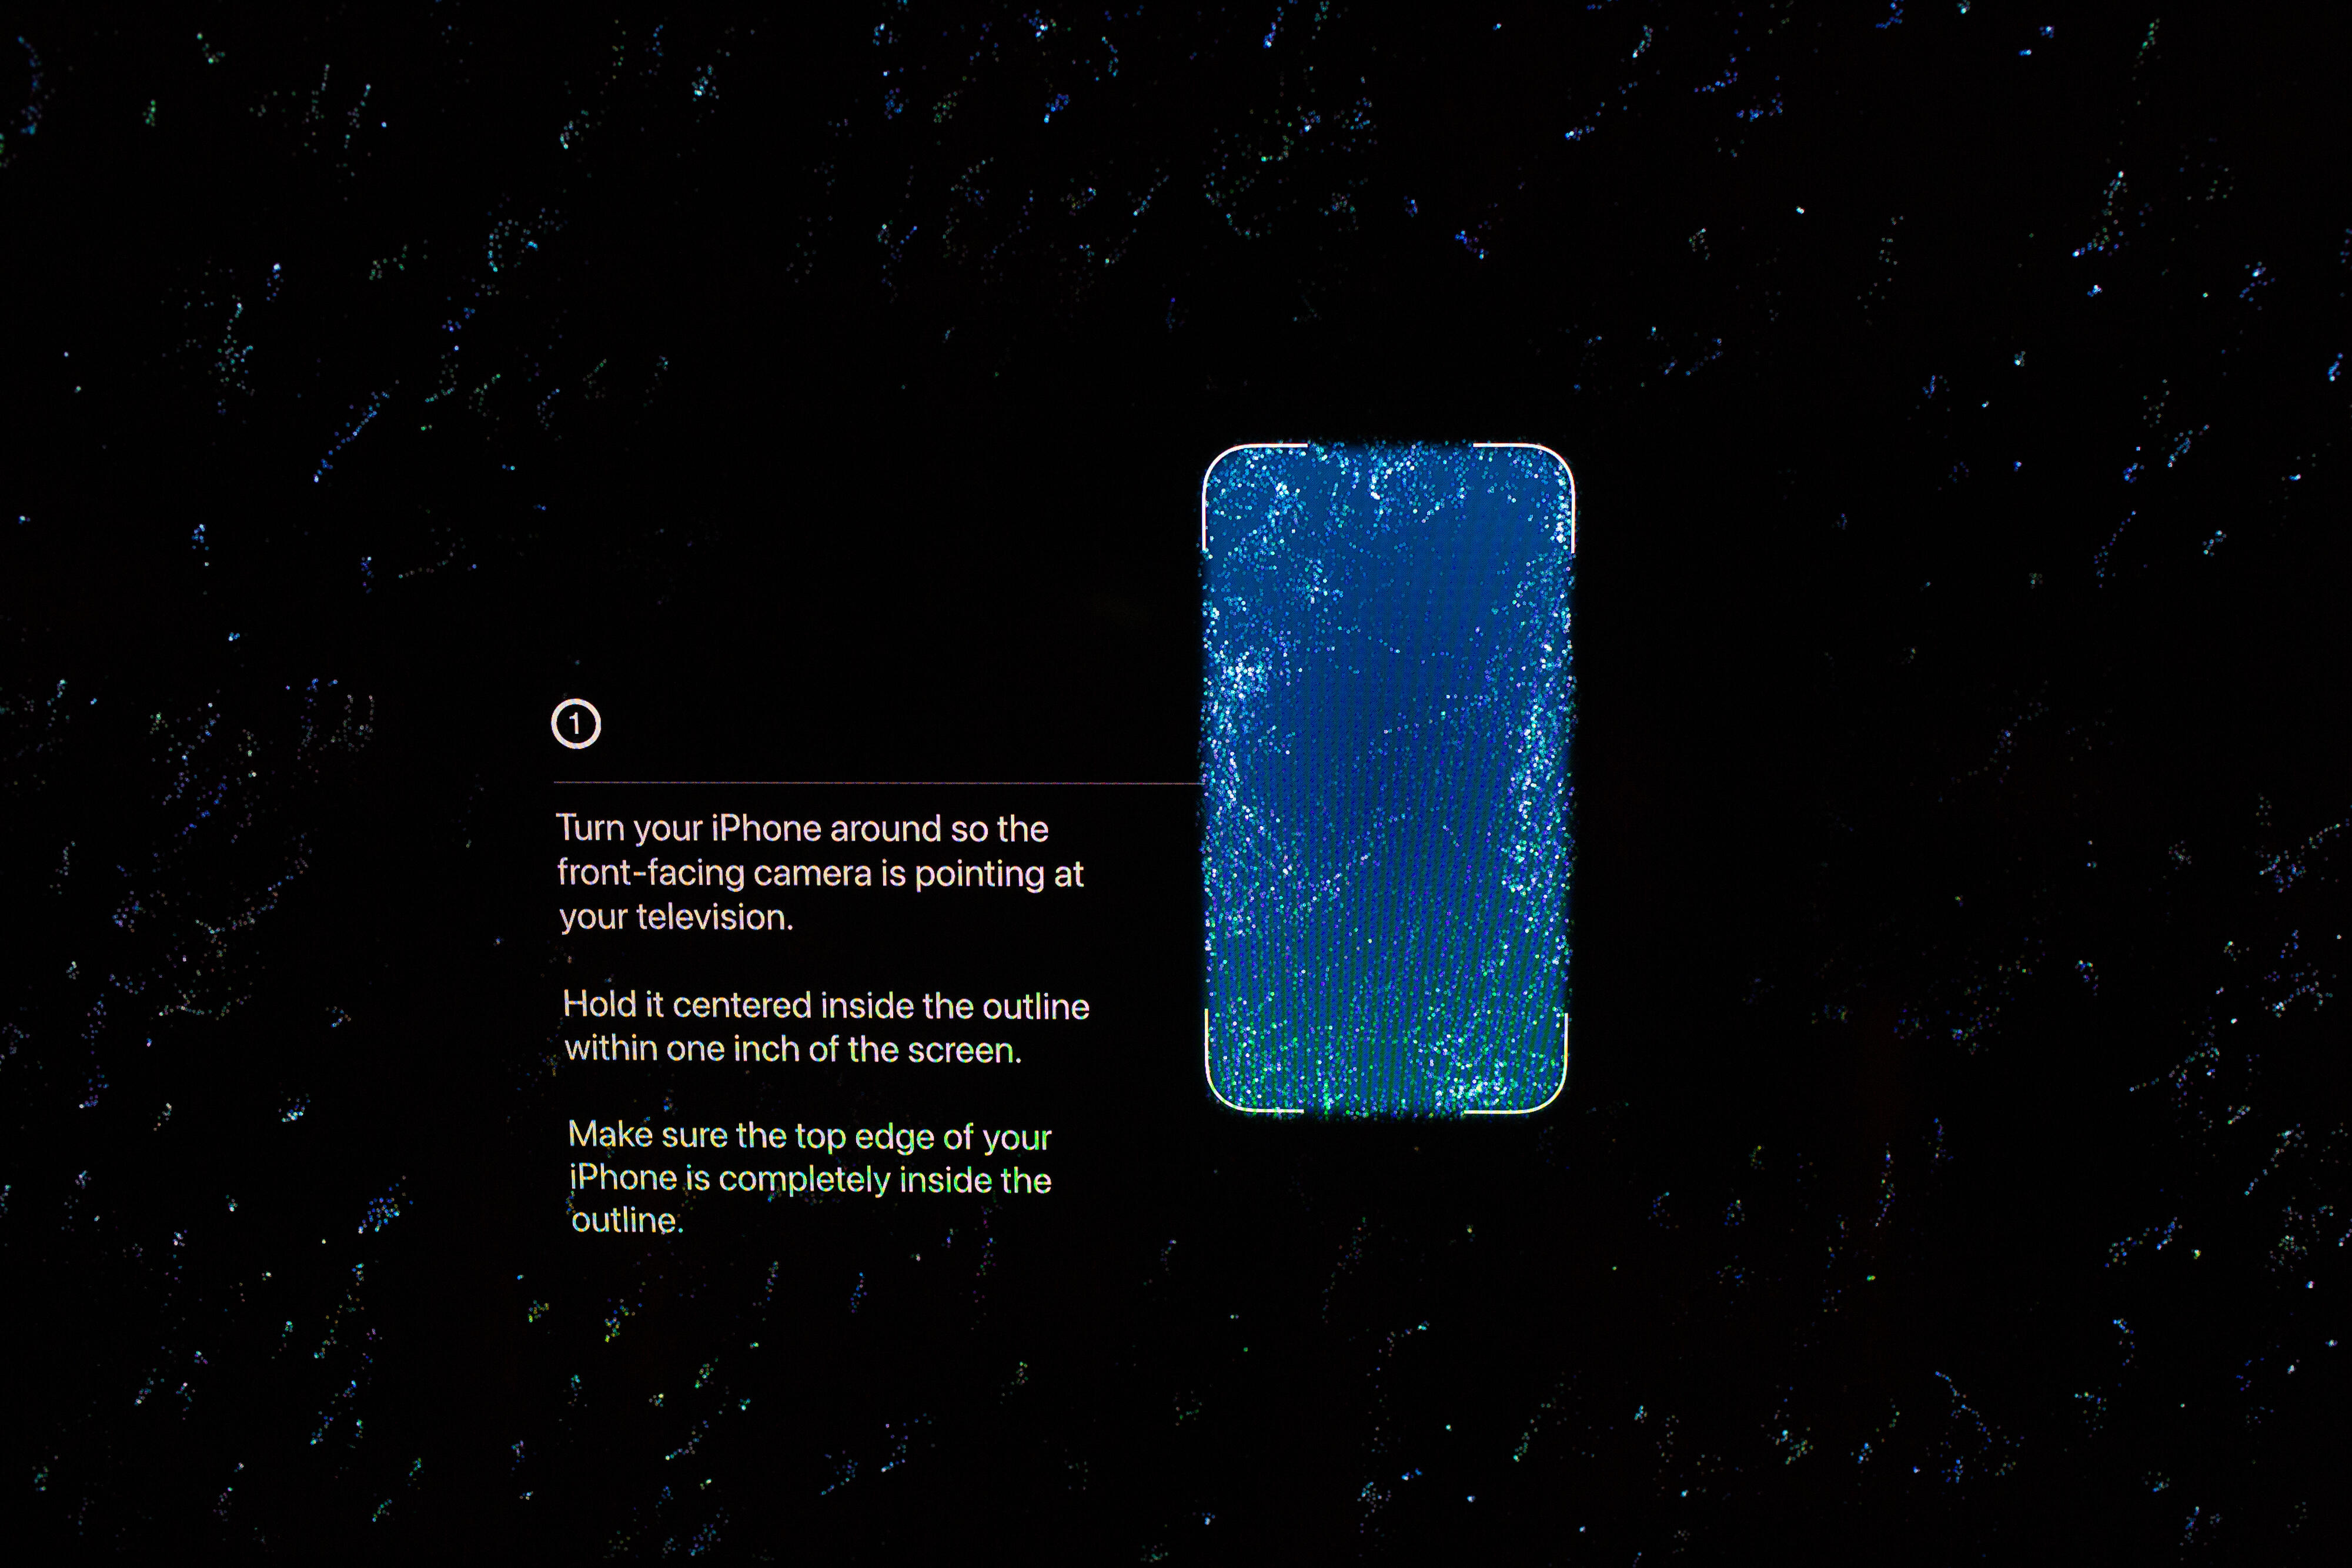 008-apple-tv-screen-calibration-with-ios-14-5-iphone-face-detection-camera